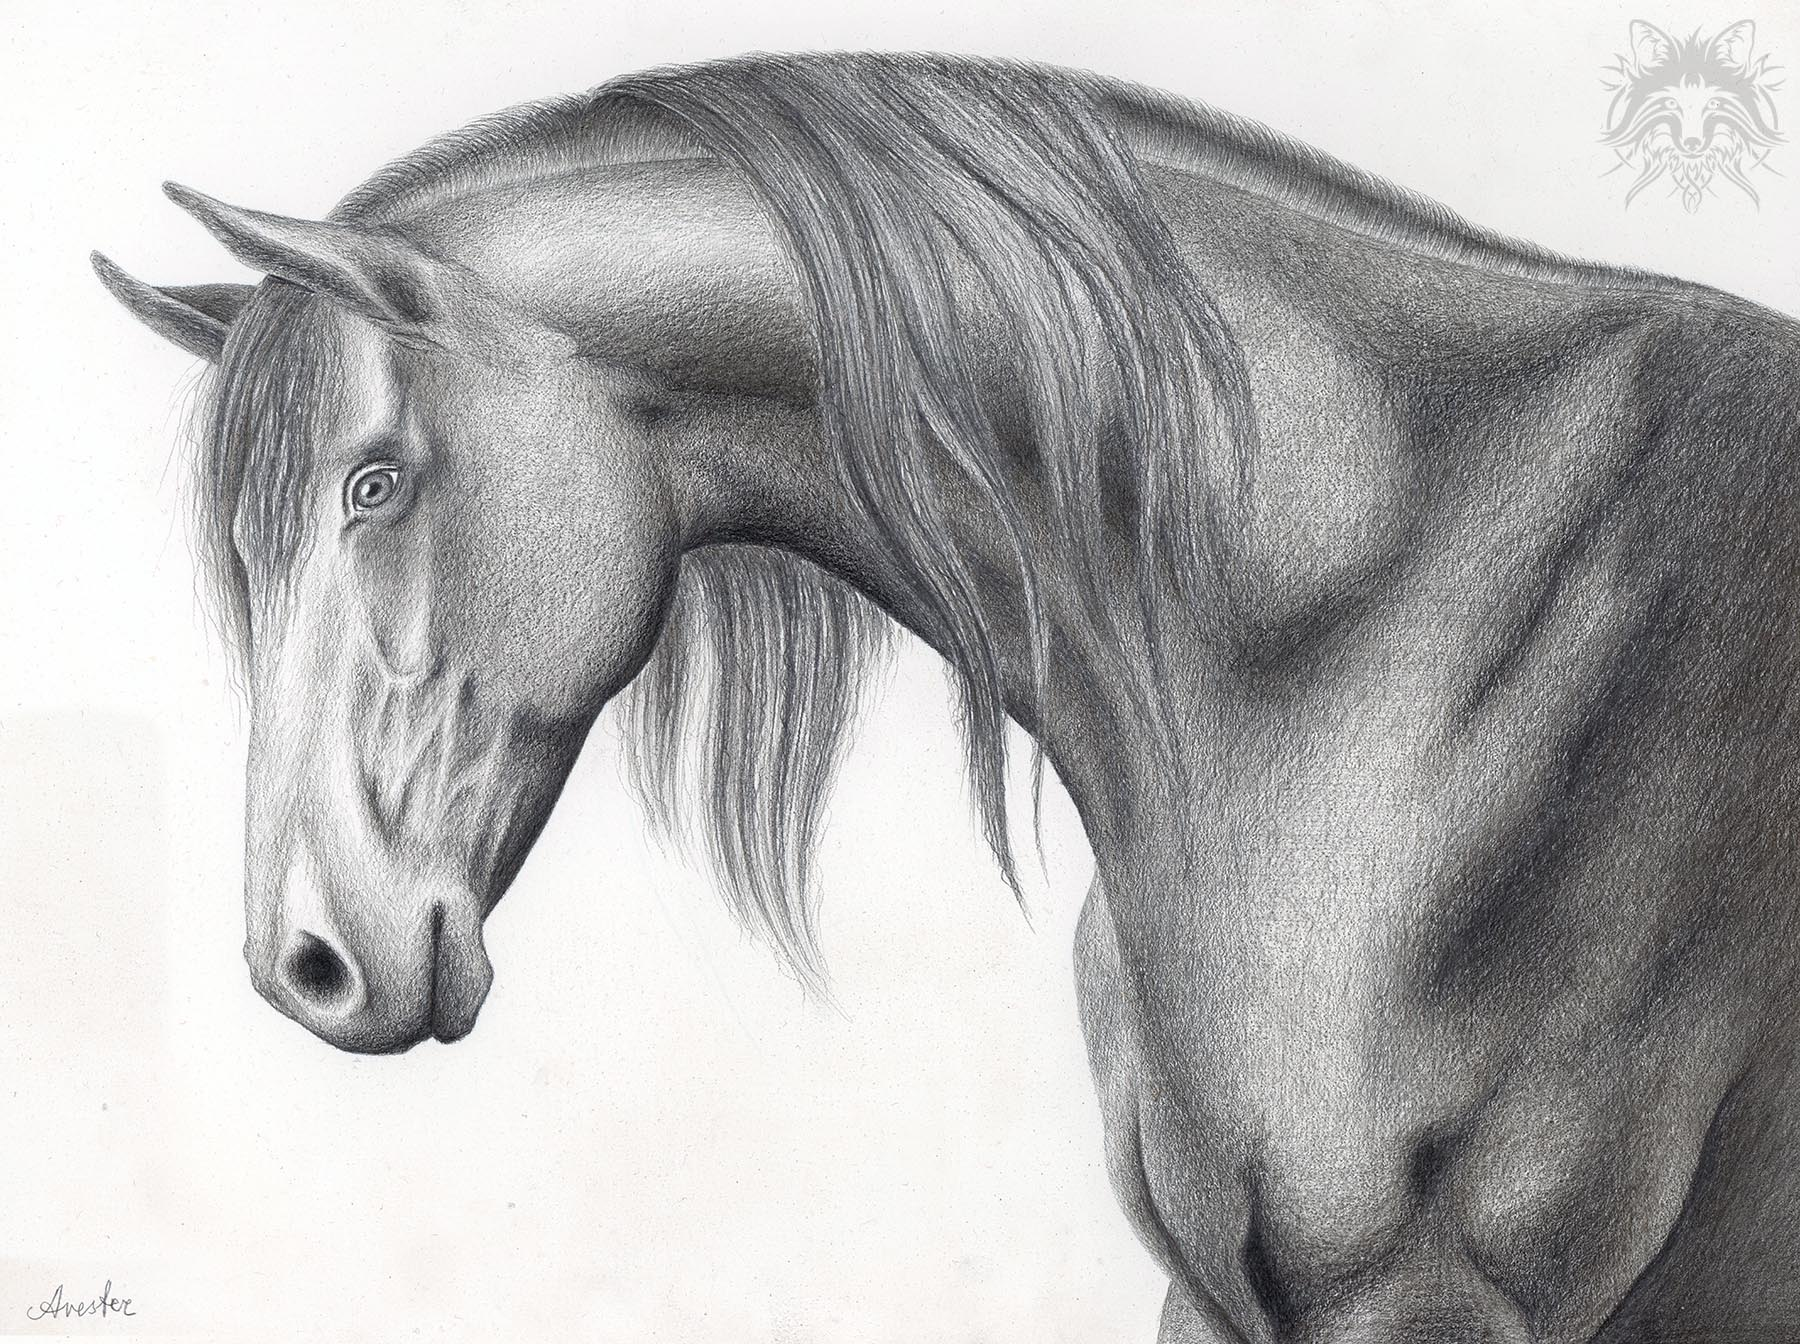 Metalpoint drawing of a horse head.